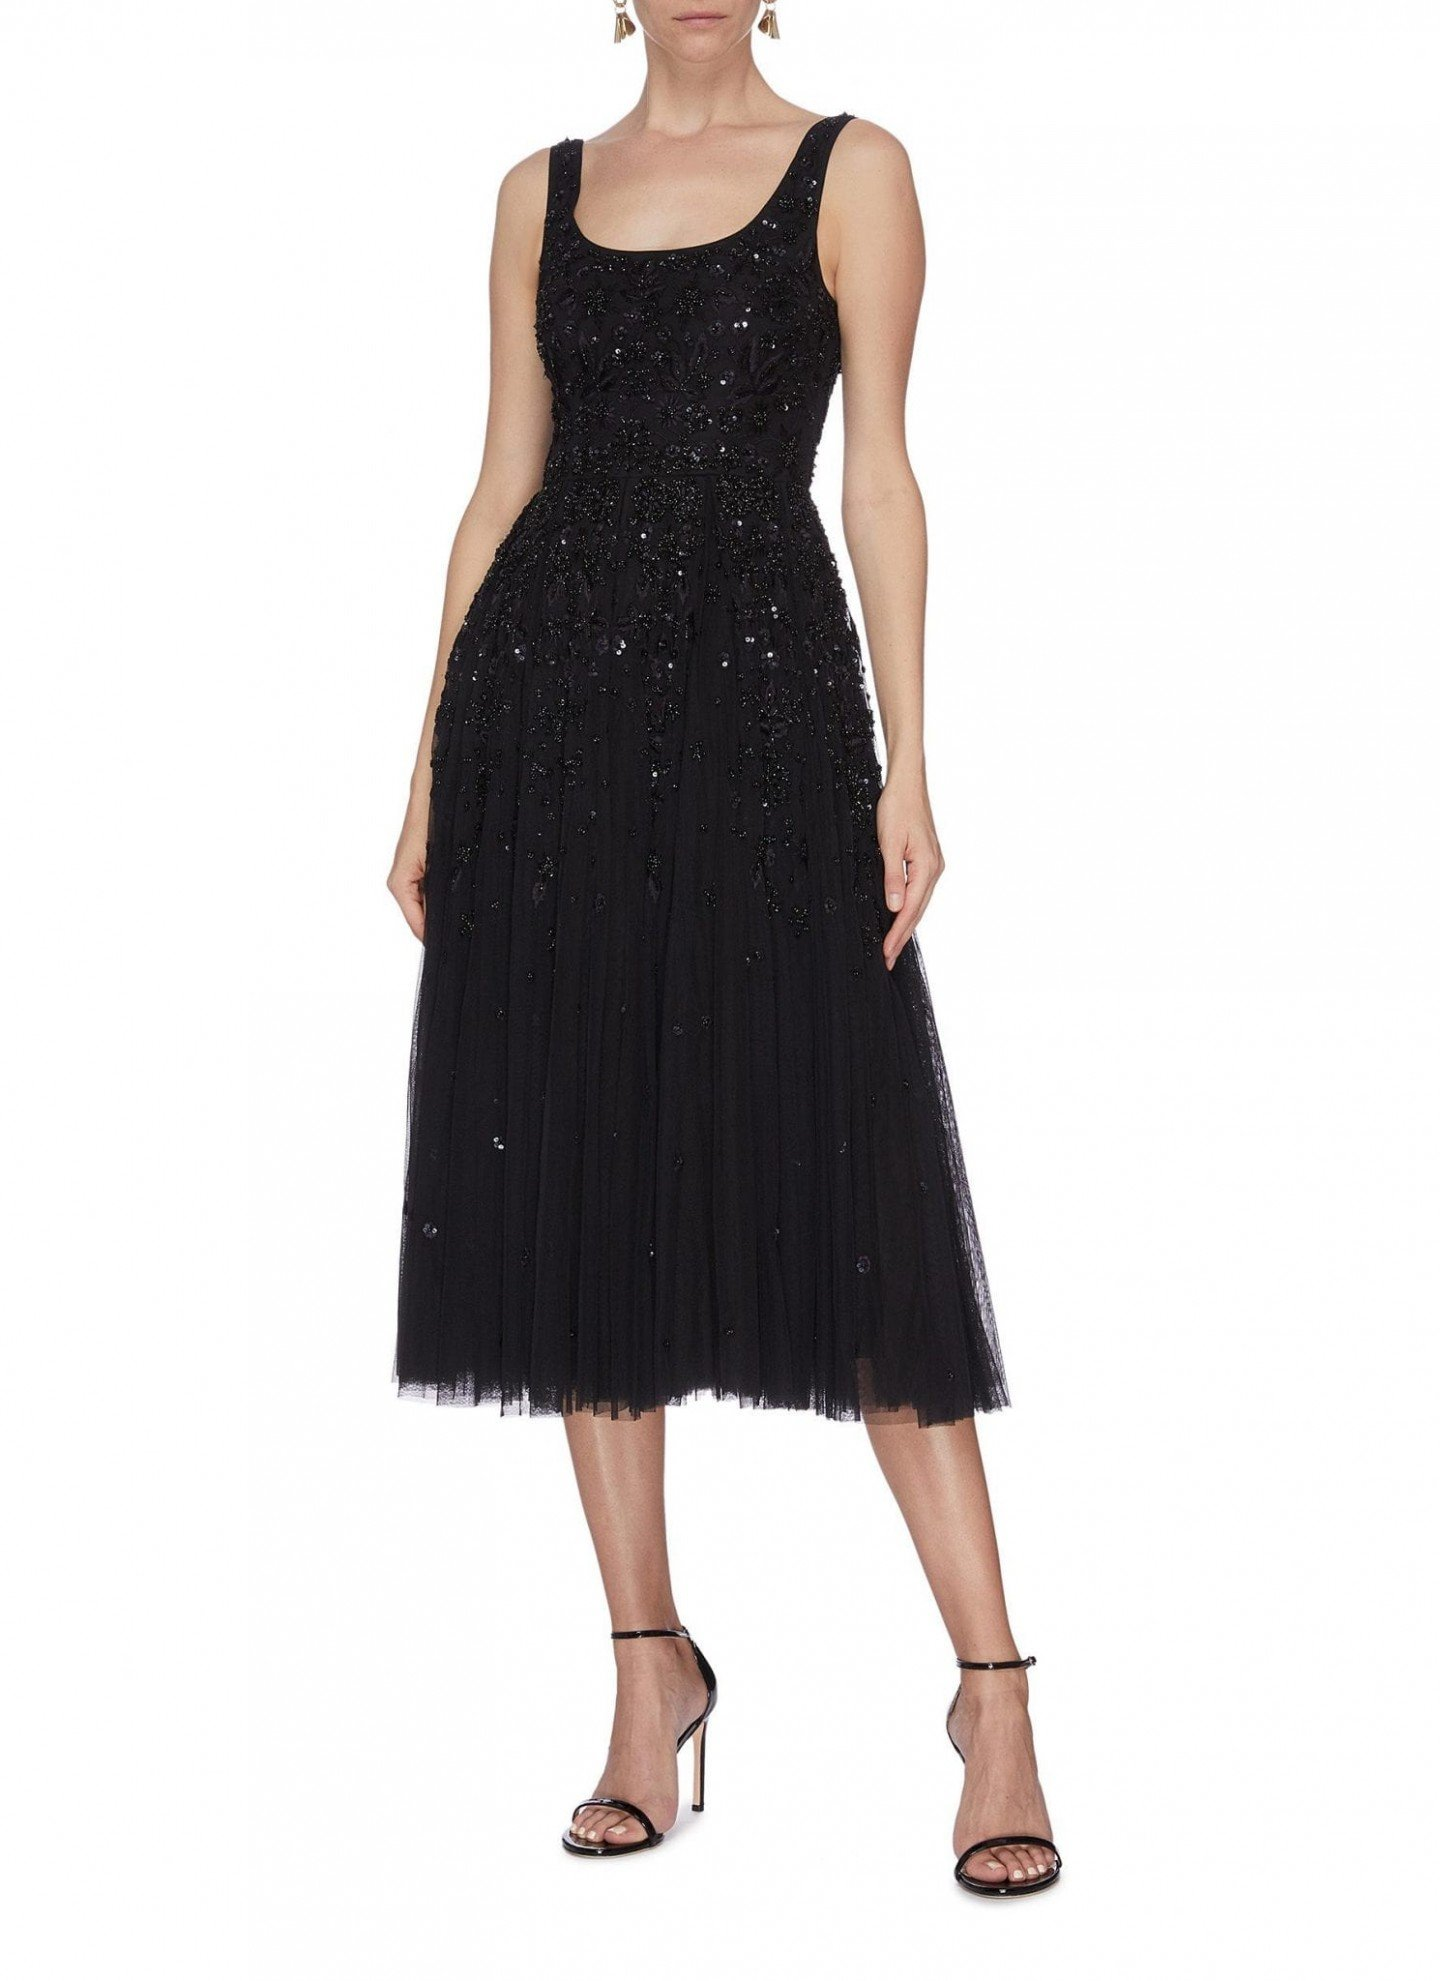 NEEDLE & THREAD 'Snowflake' Sequin Embellished Prom Dress